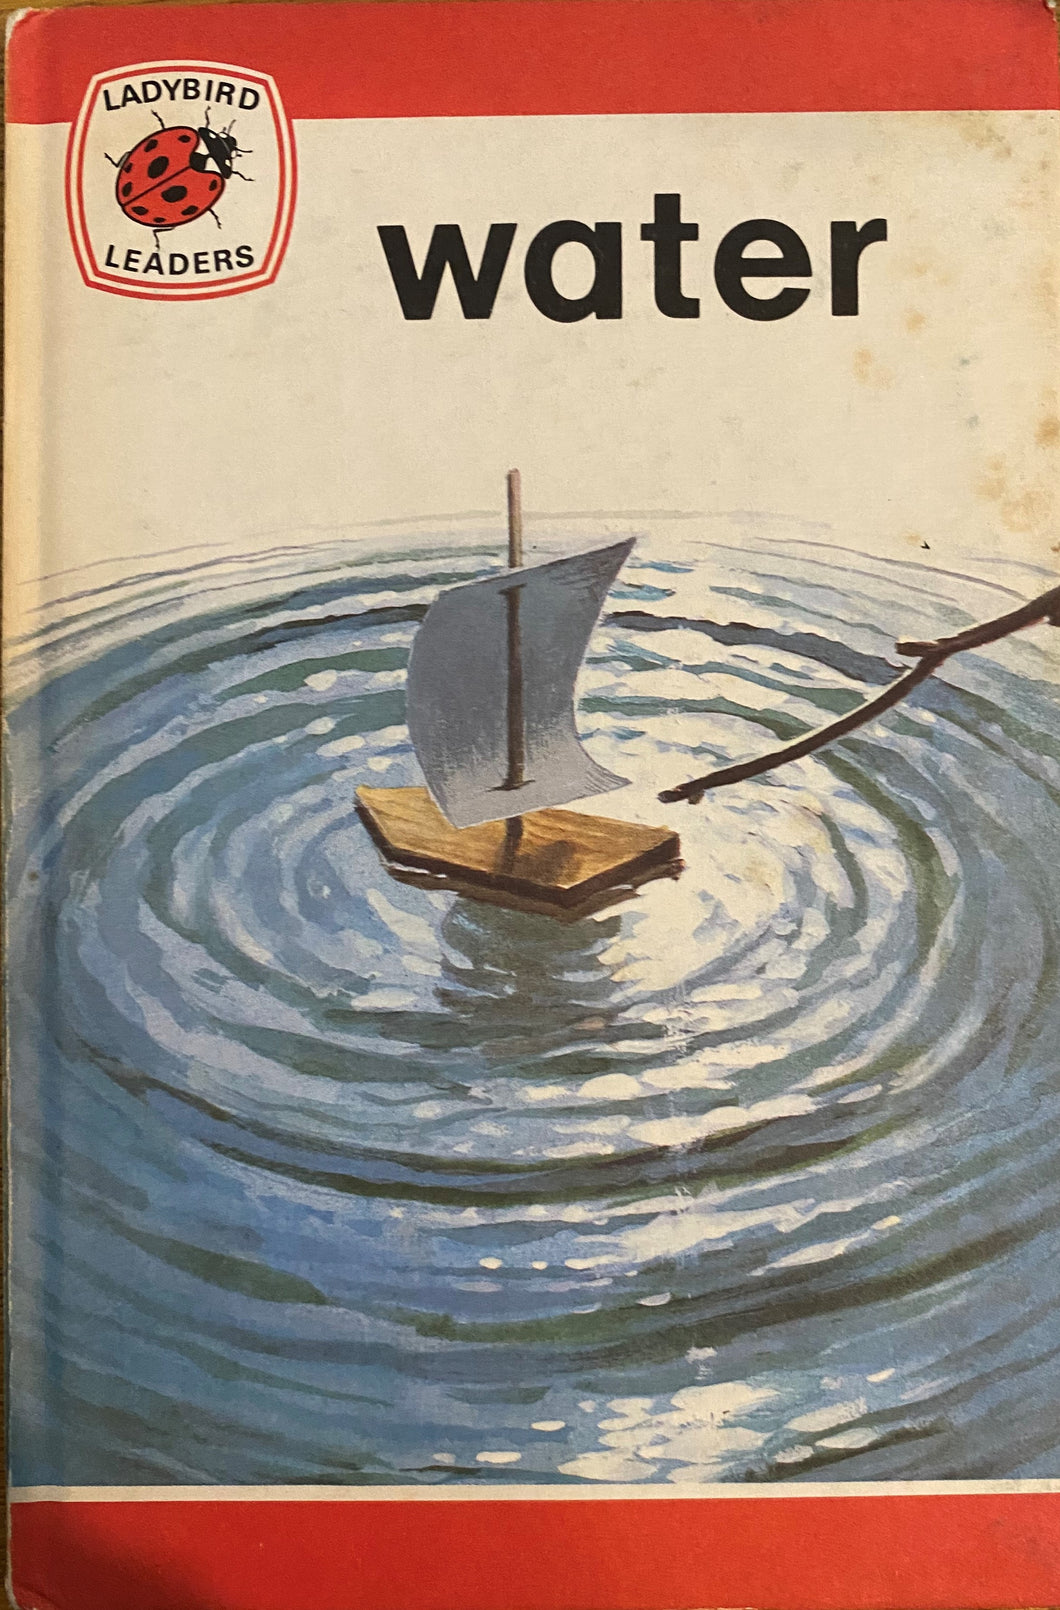 Water (11 January 1978 - 24 June 1979)